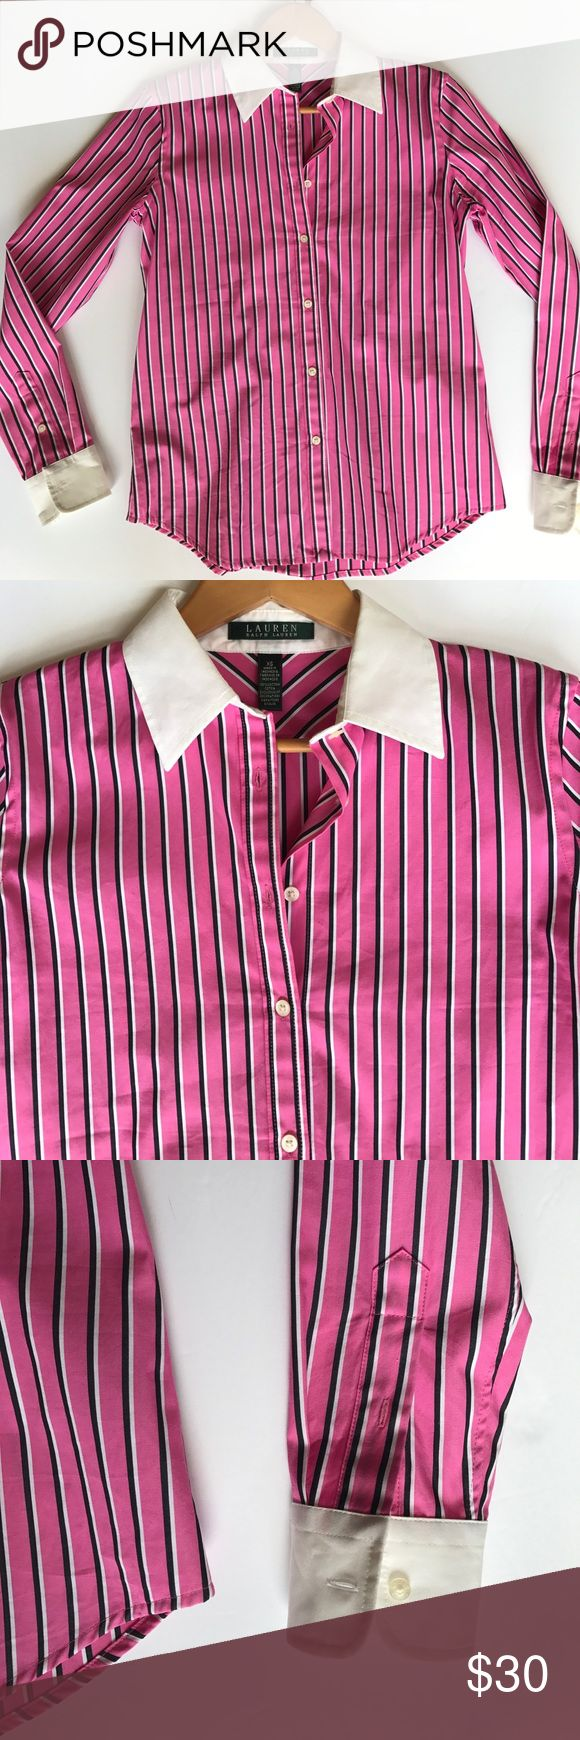 Lauren Ralph Lauren 🌷💼 Sharp Lauren Ralph Lauren  Button down Oxford shirt Pink with black striped  White collar  Size xs 0 2 4 Like new worn once   Are you bored in the boardroom? Tired of drab office attire? Trade in your stock of frumpy blouses and browse the Datpiff99 market of amazing wear-to-work styles! Professorial looks for amazing deals- buy while the price is low and invest your confidence! I know you will feel powerful in this top! Great with j.crew, loft & banana republic nail…